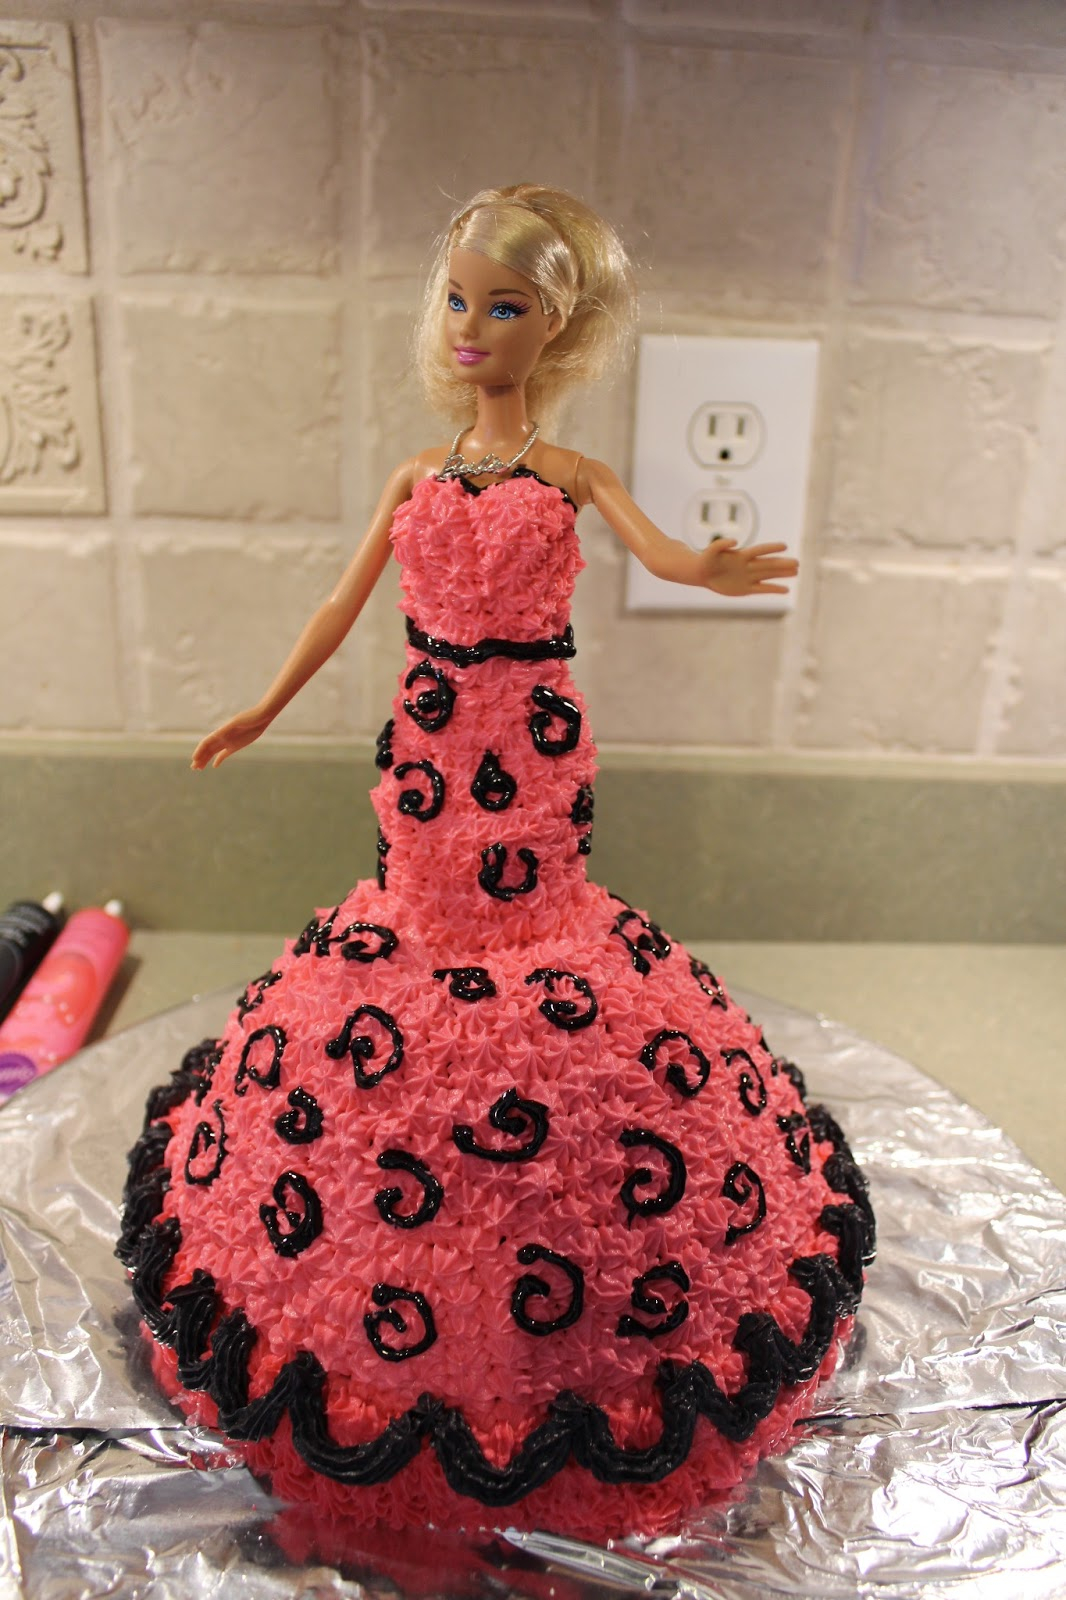 Barbie Birthday Cakes The Cool Science Dad Barbie Birthday Cake